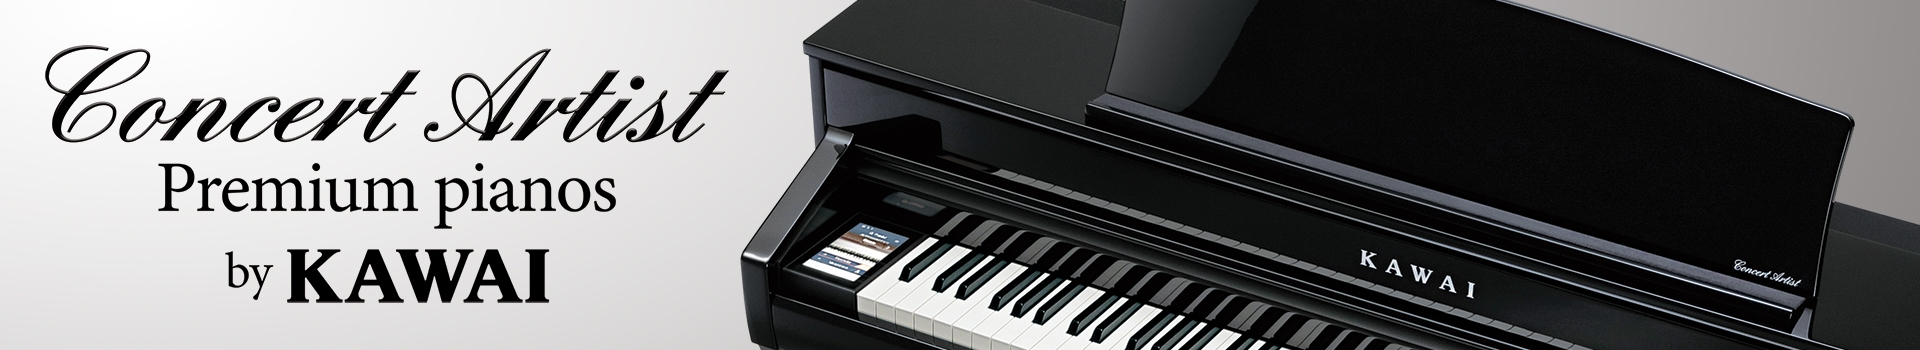 Kawai Concert Artist Digital Pianos - For The Concert Artist In Every Home